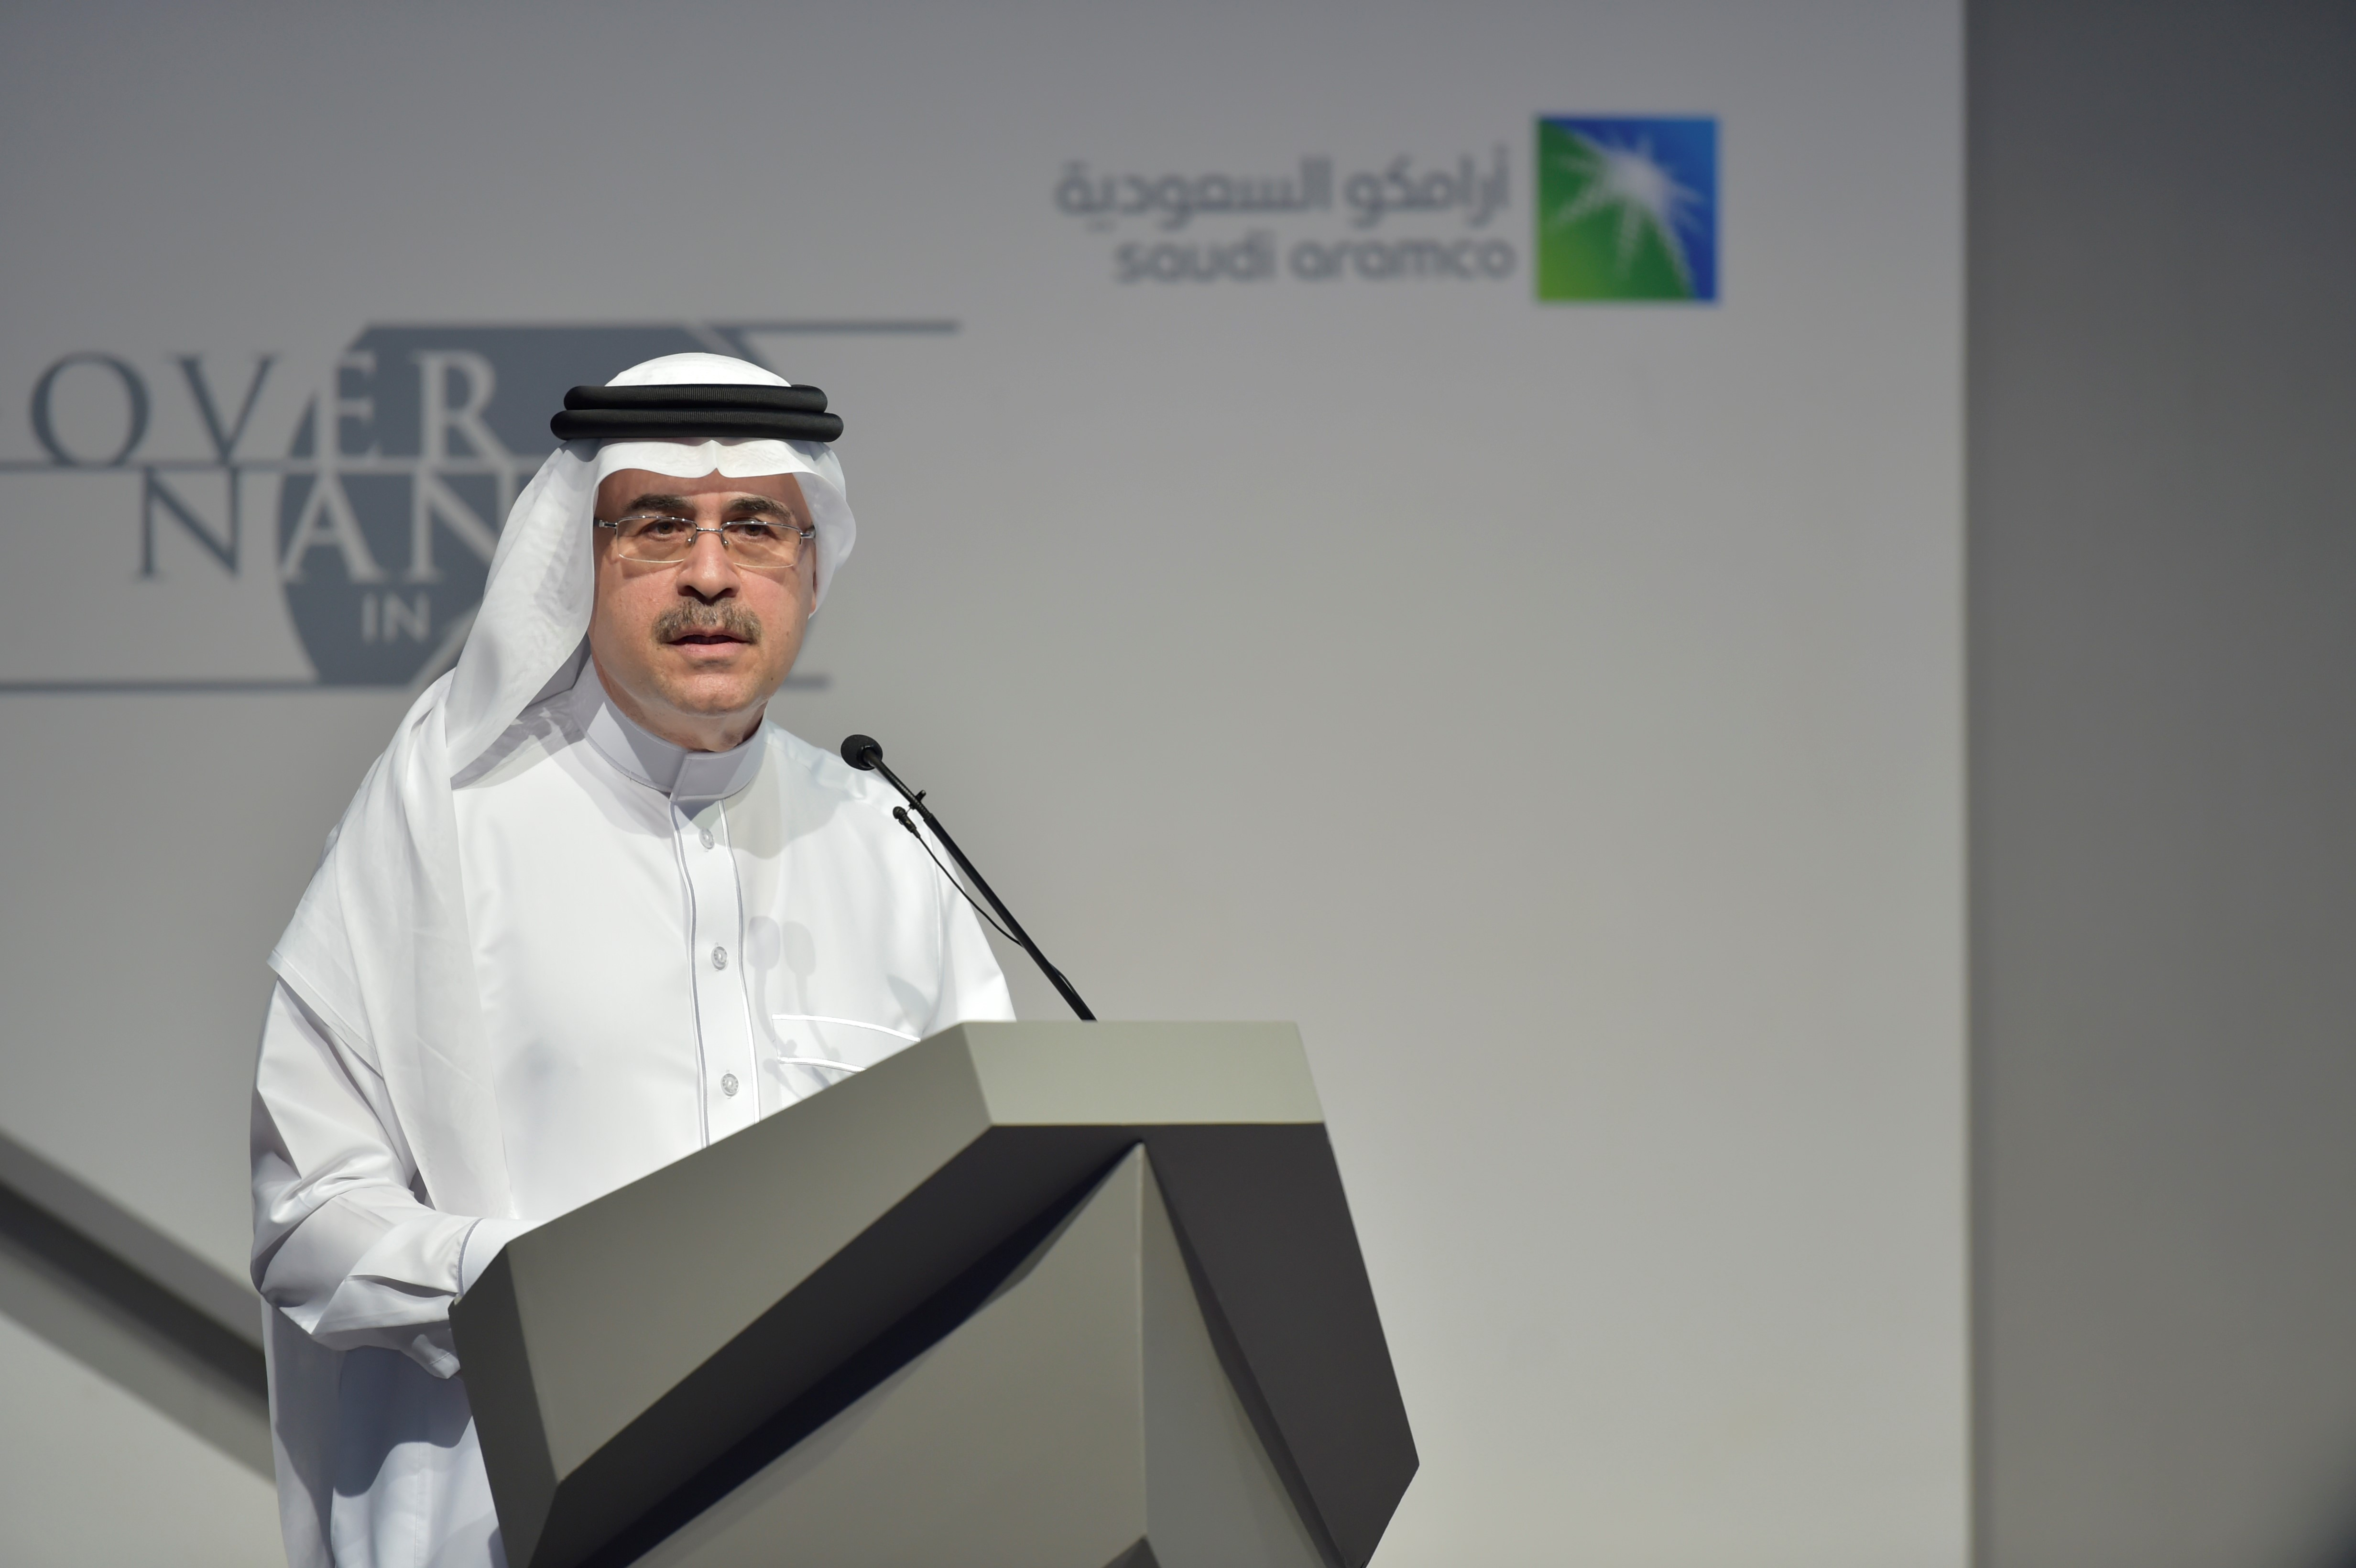 Saudi Aramco Co-Hosts 'Governance in Focus' Forum with UAE's